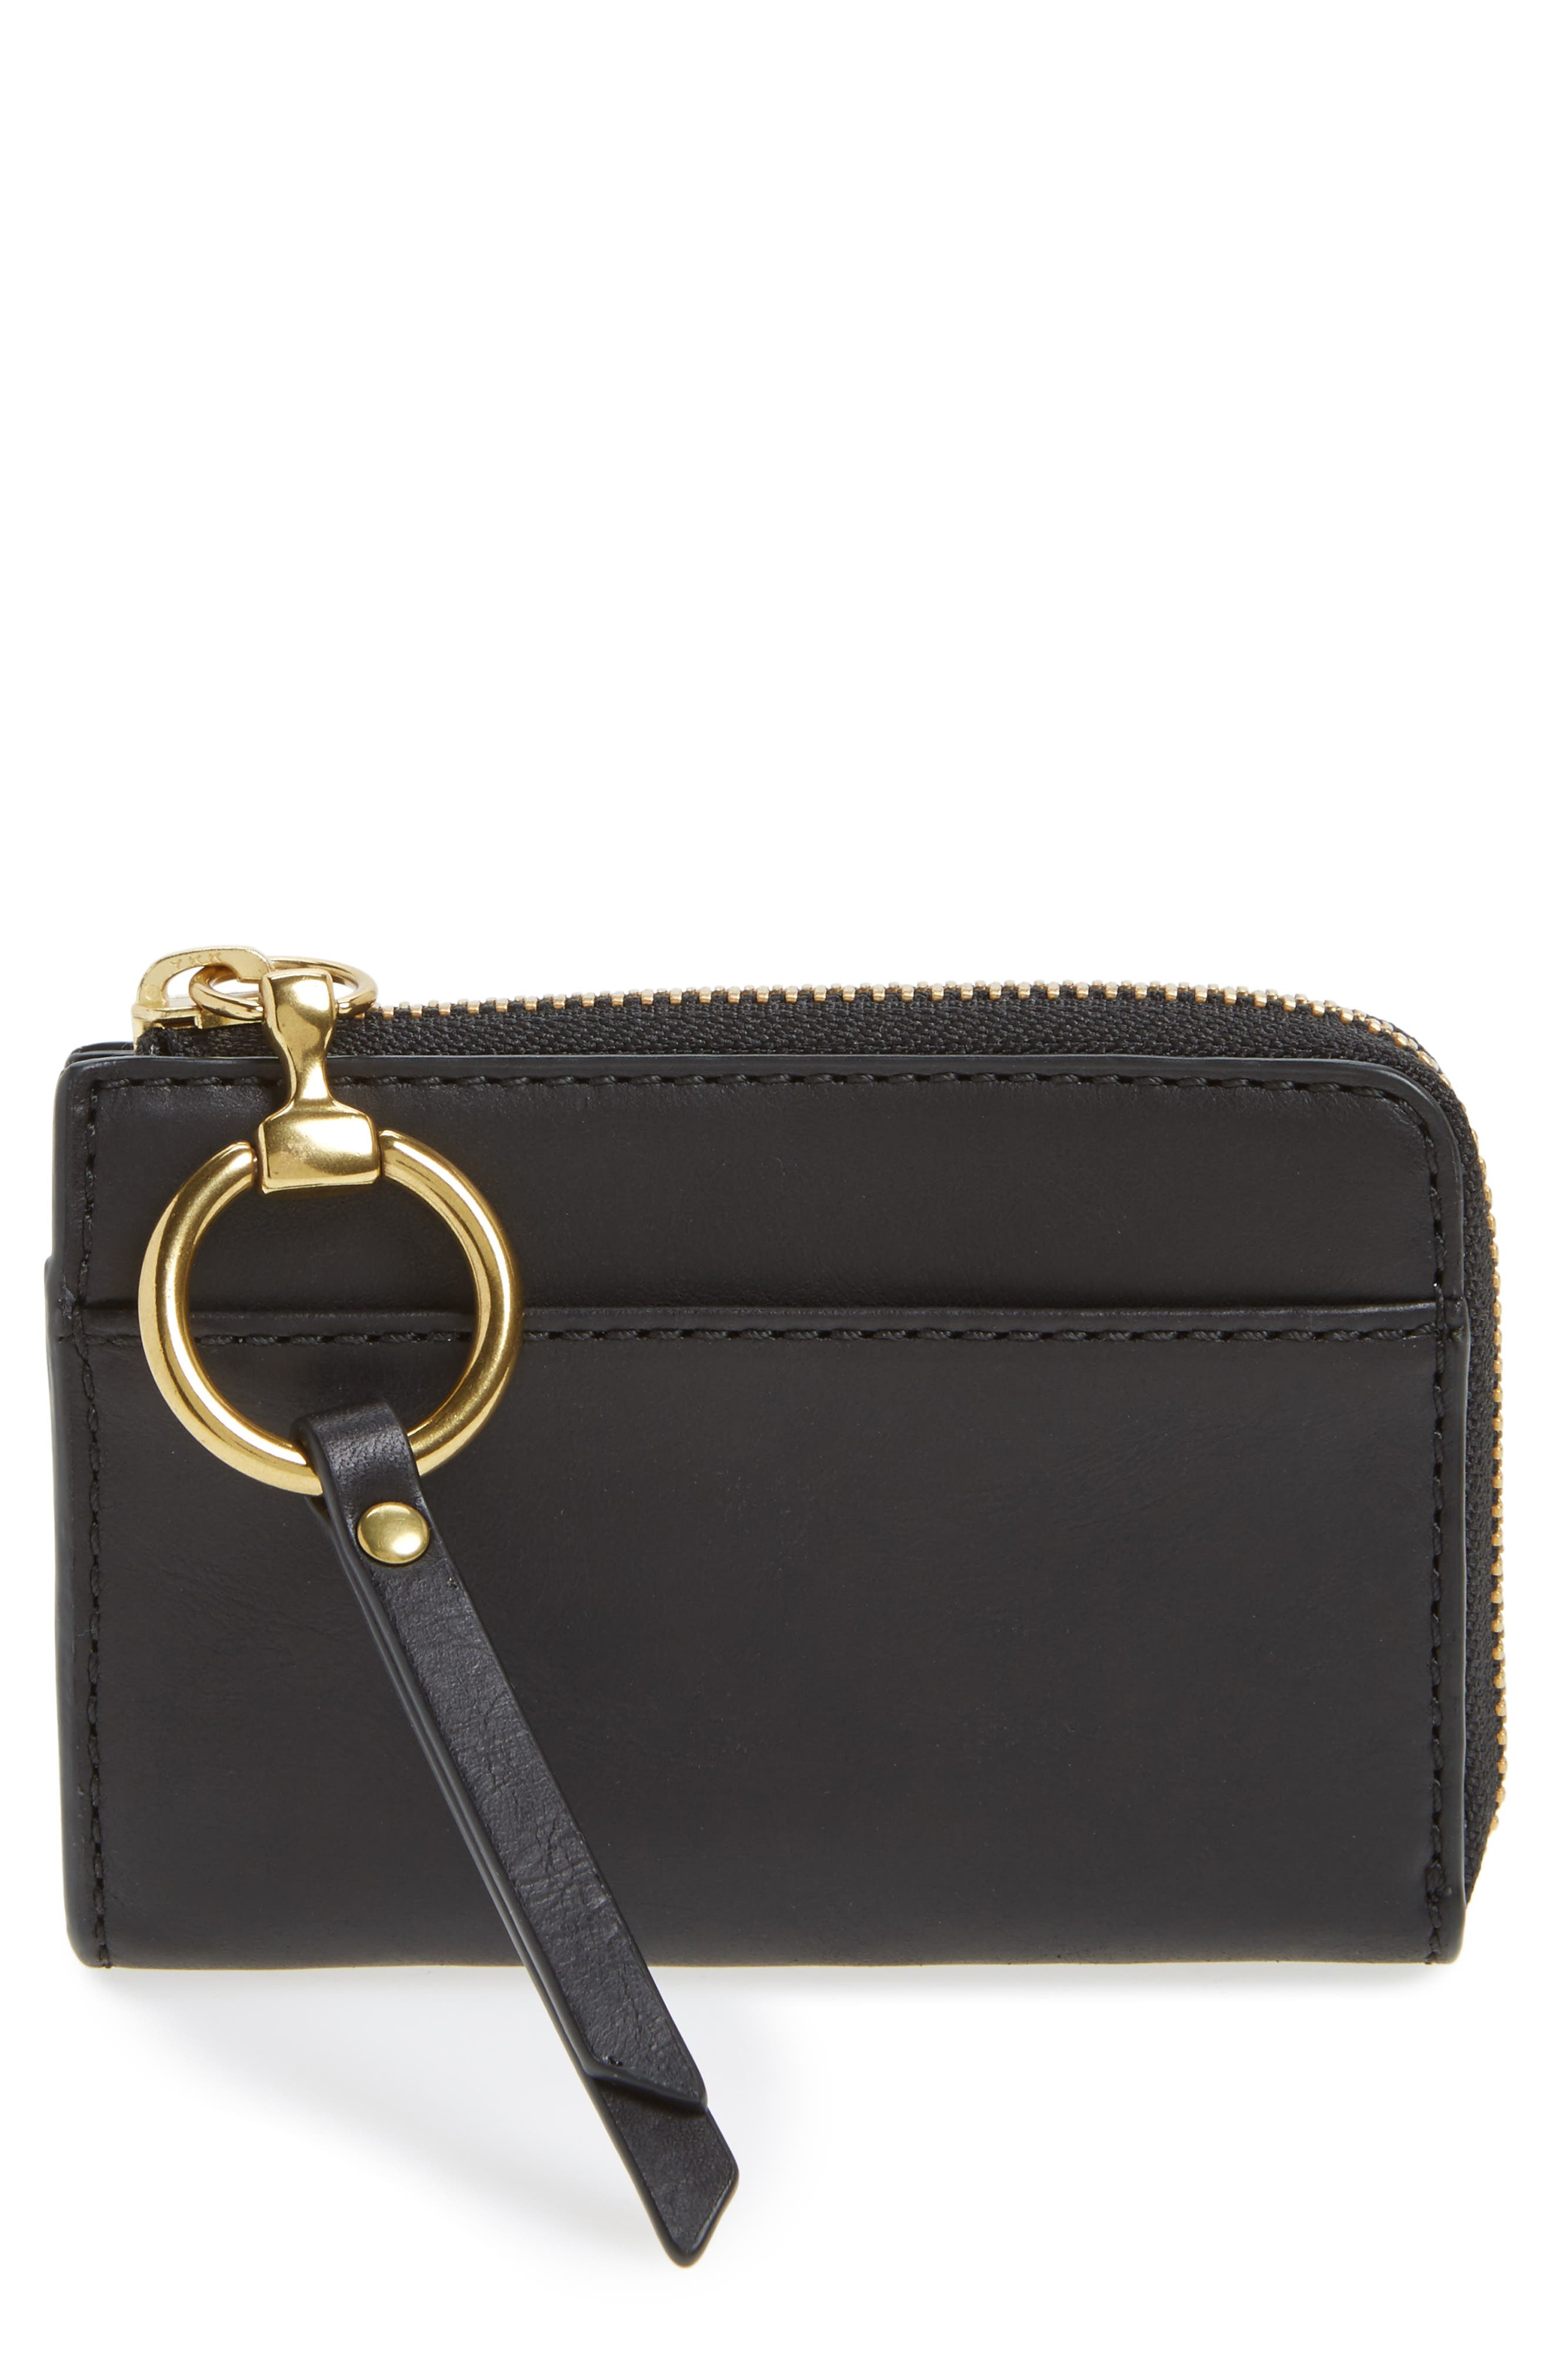 Main Image - Frye Small Ilana Harness Zip Leather Wallet